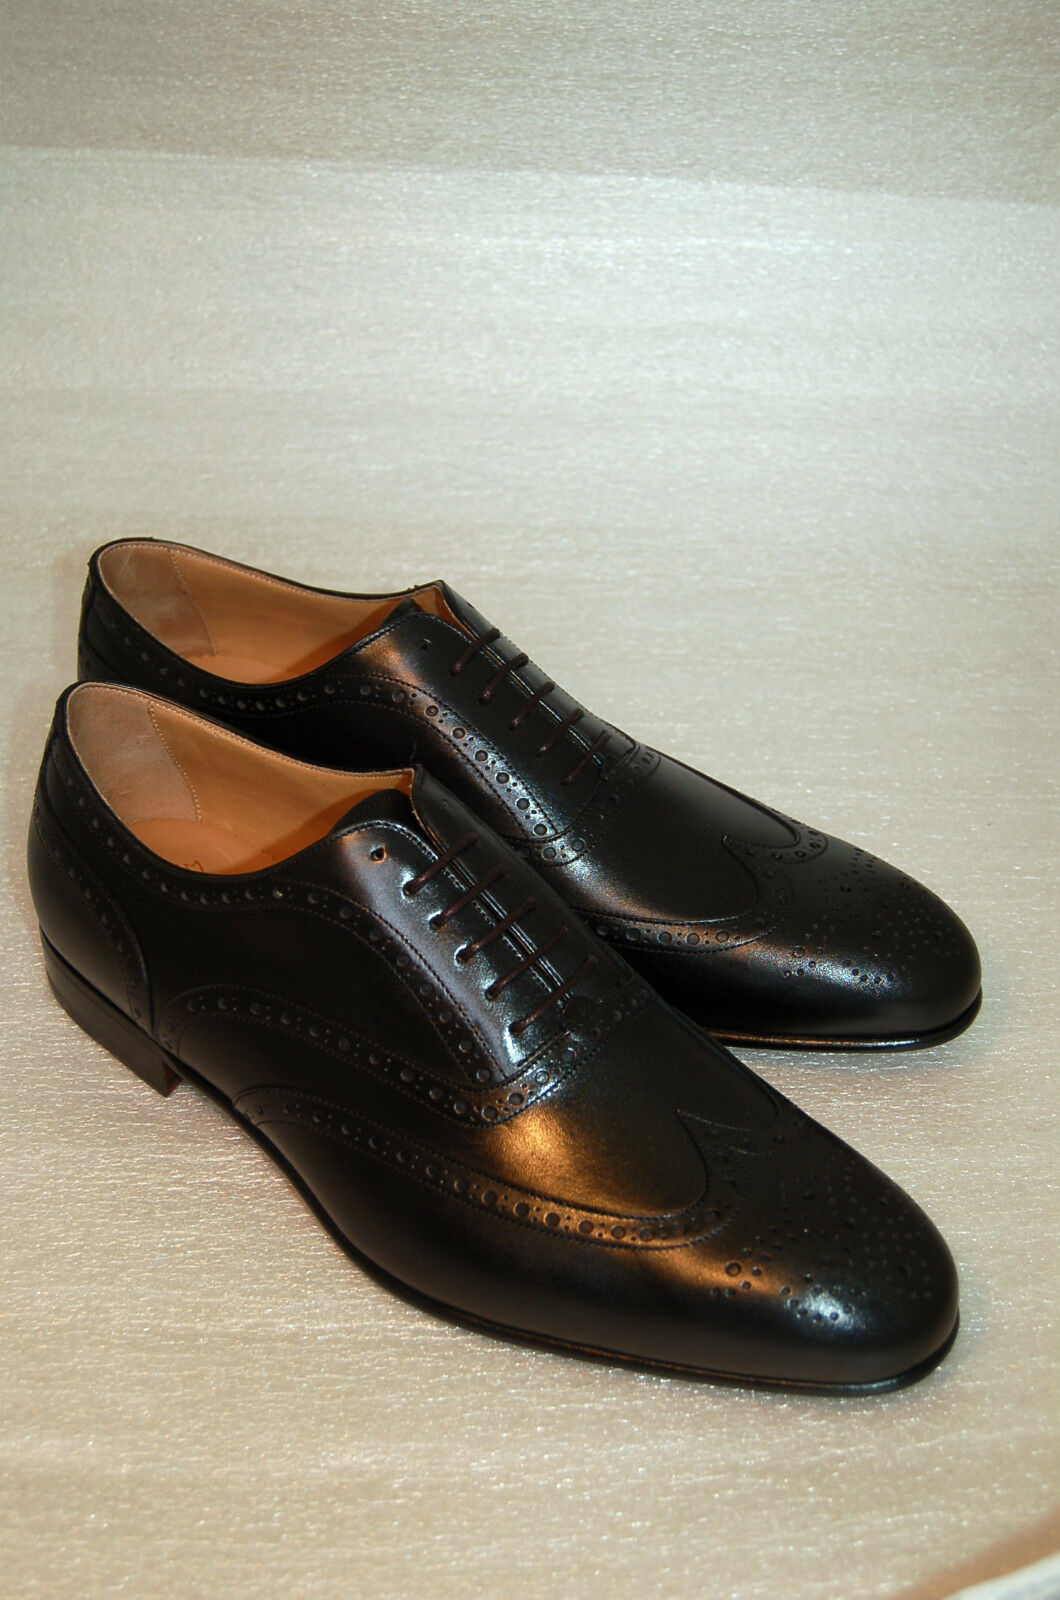 MAN - OXFORD WINGTIP - BLACK CALF CALF CALF W/PERFS AND MEDALLION - LEATHER SOLE - BLAKE 5b04f6